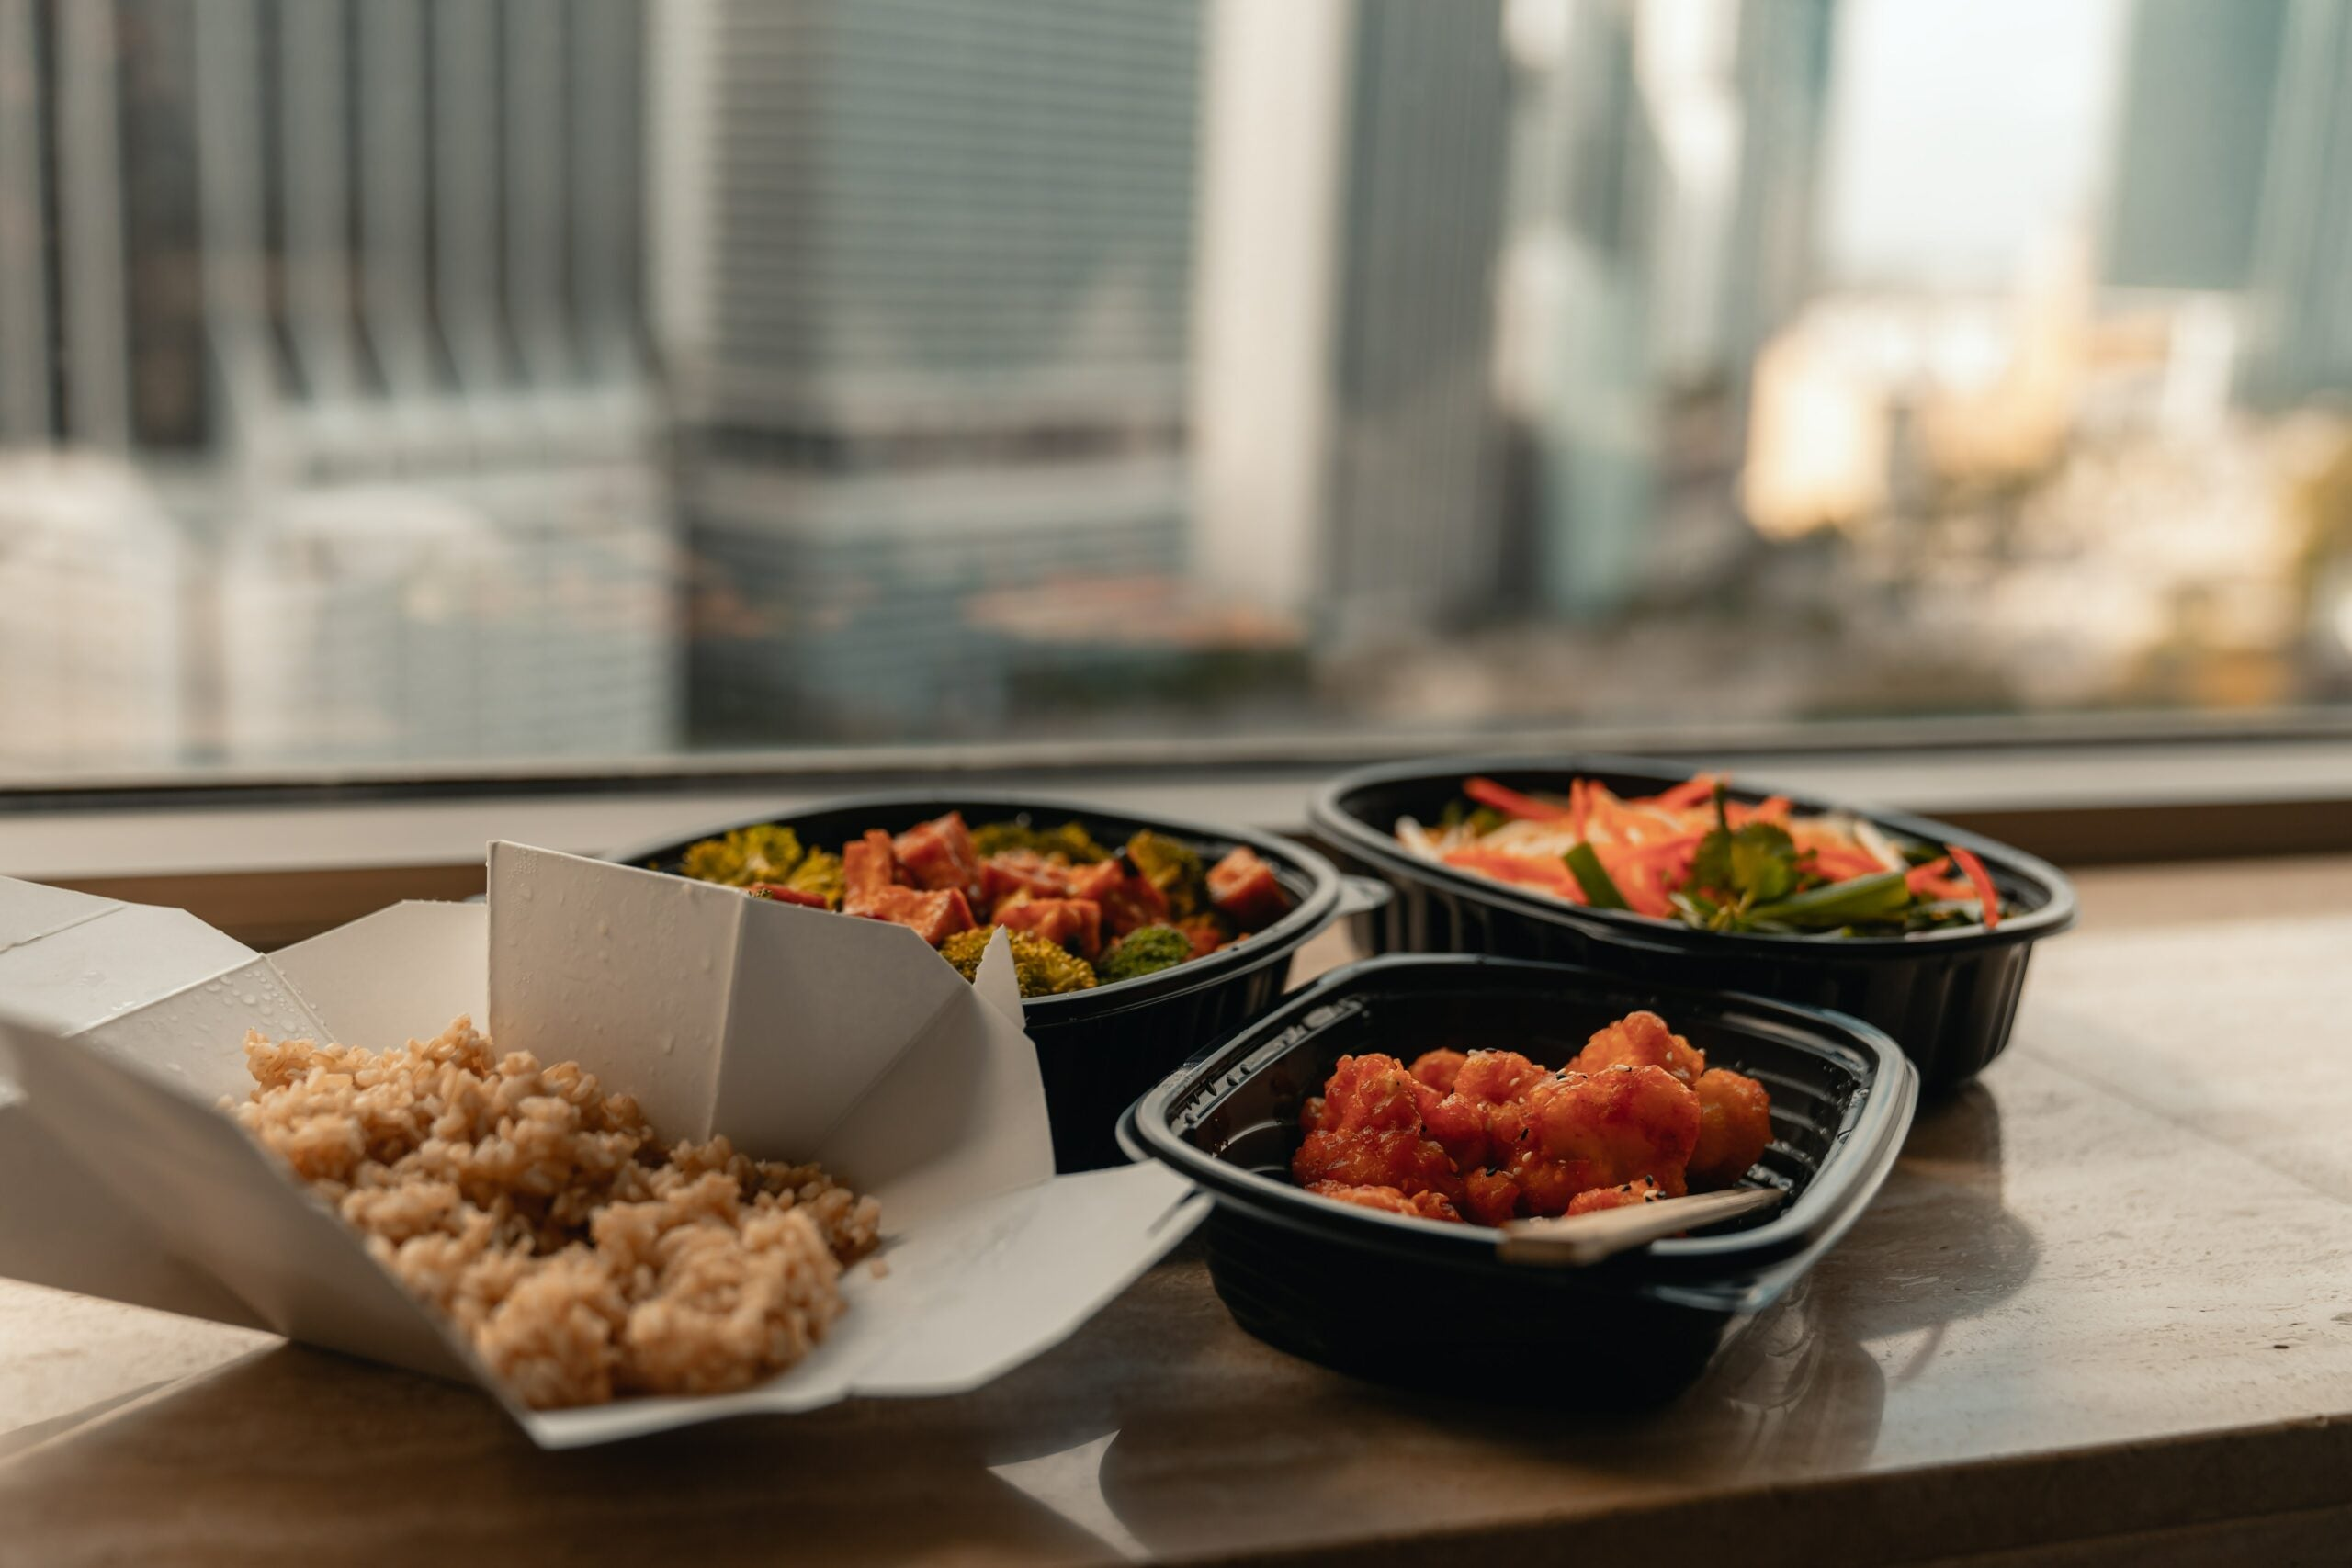 To-go food containers.